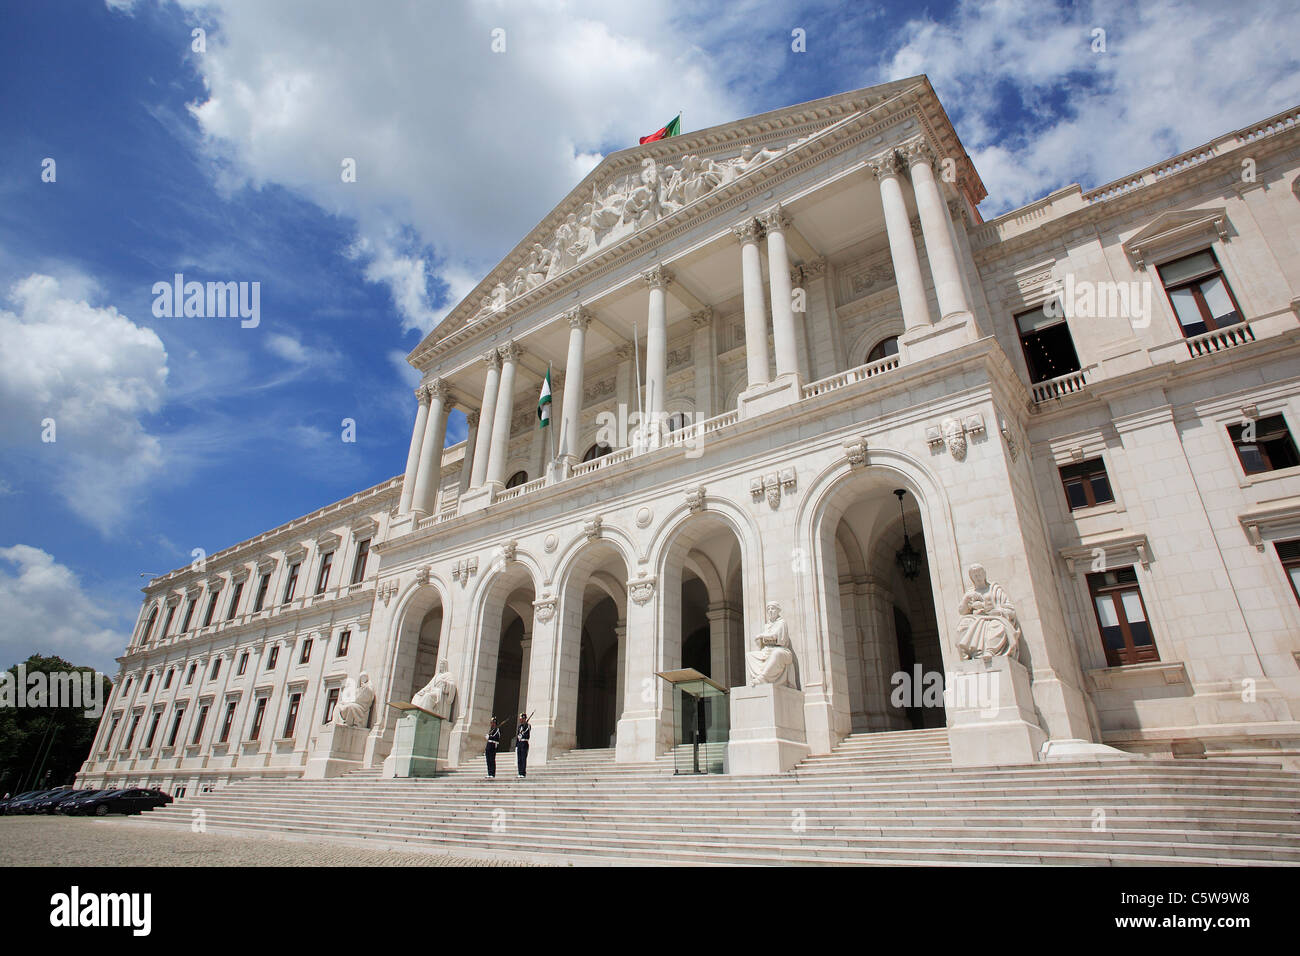 Portugal Lisbon View Of Government Building Stock Photo Alamy